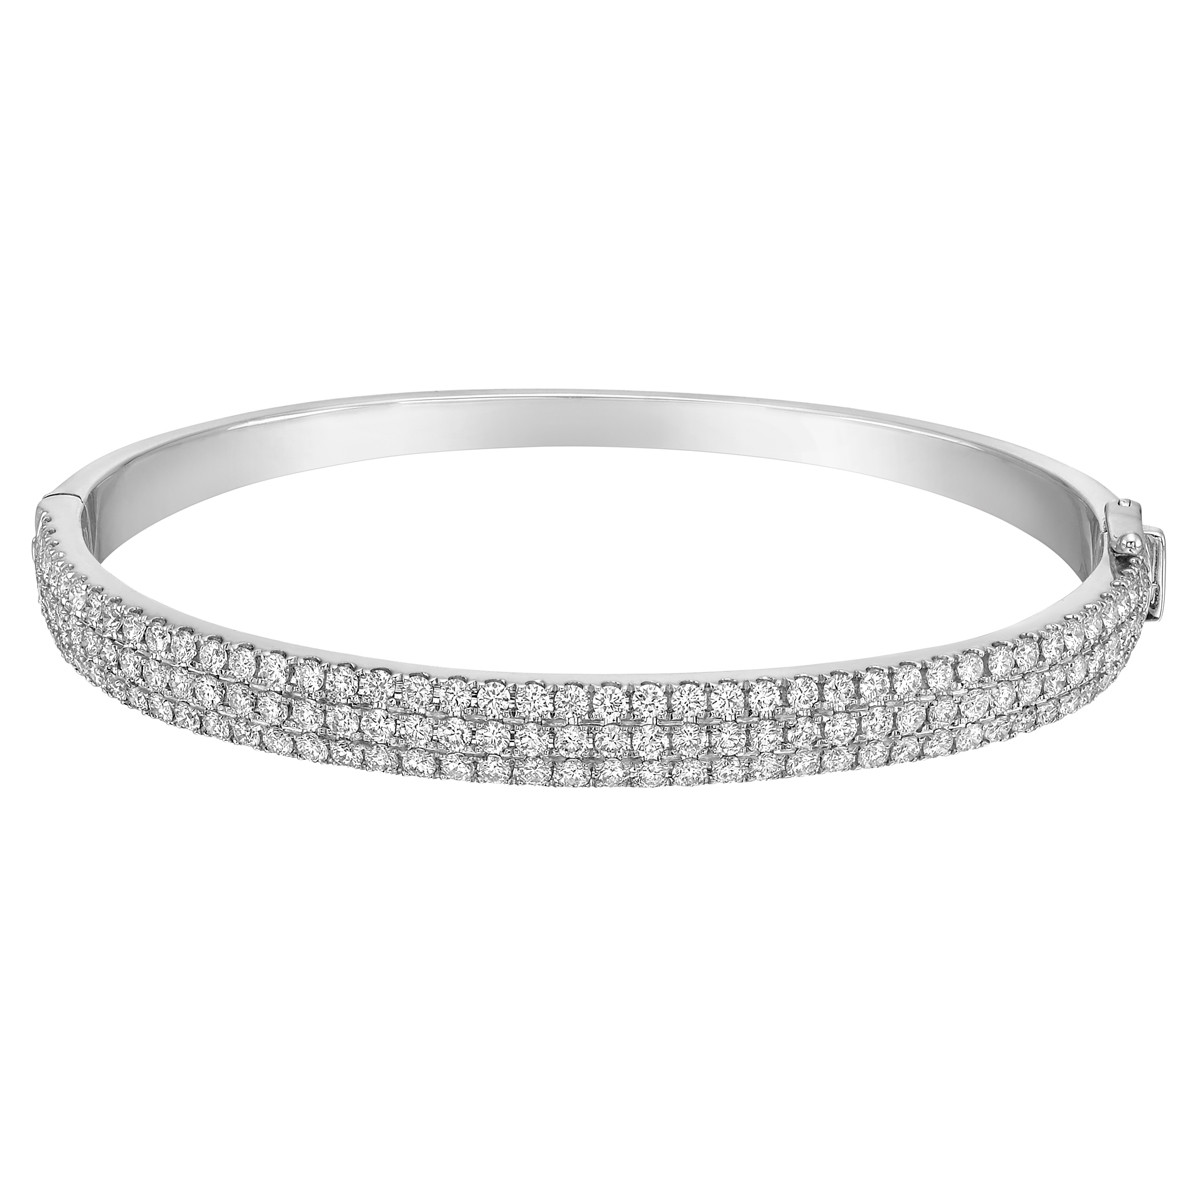 18k White Gold & Pavé Diamond Bangle (~3 ct tw)